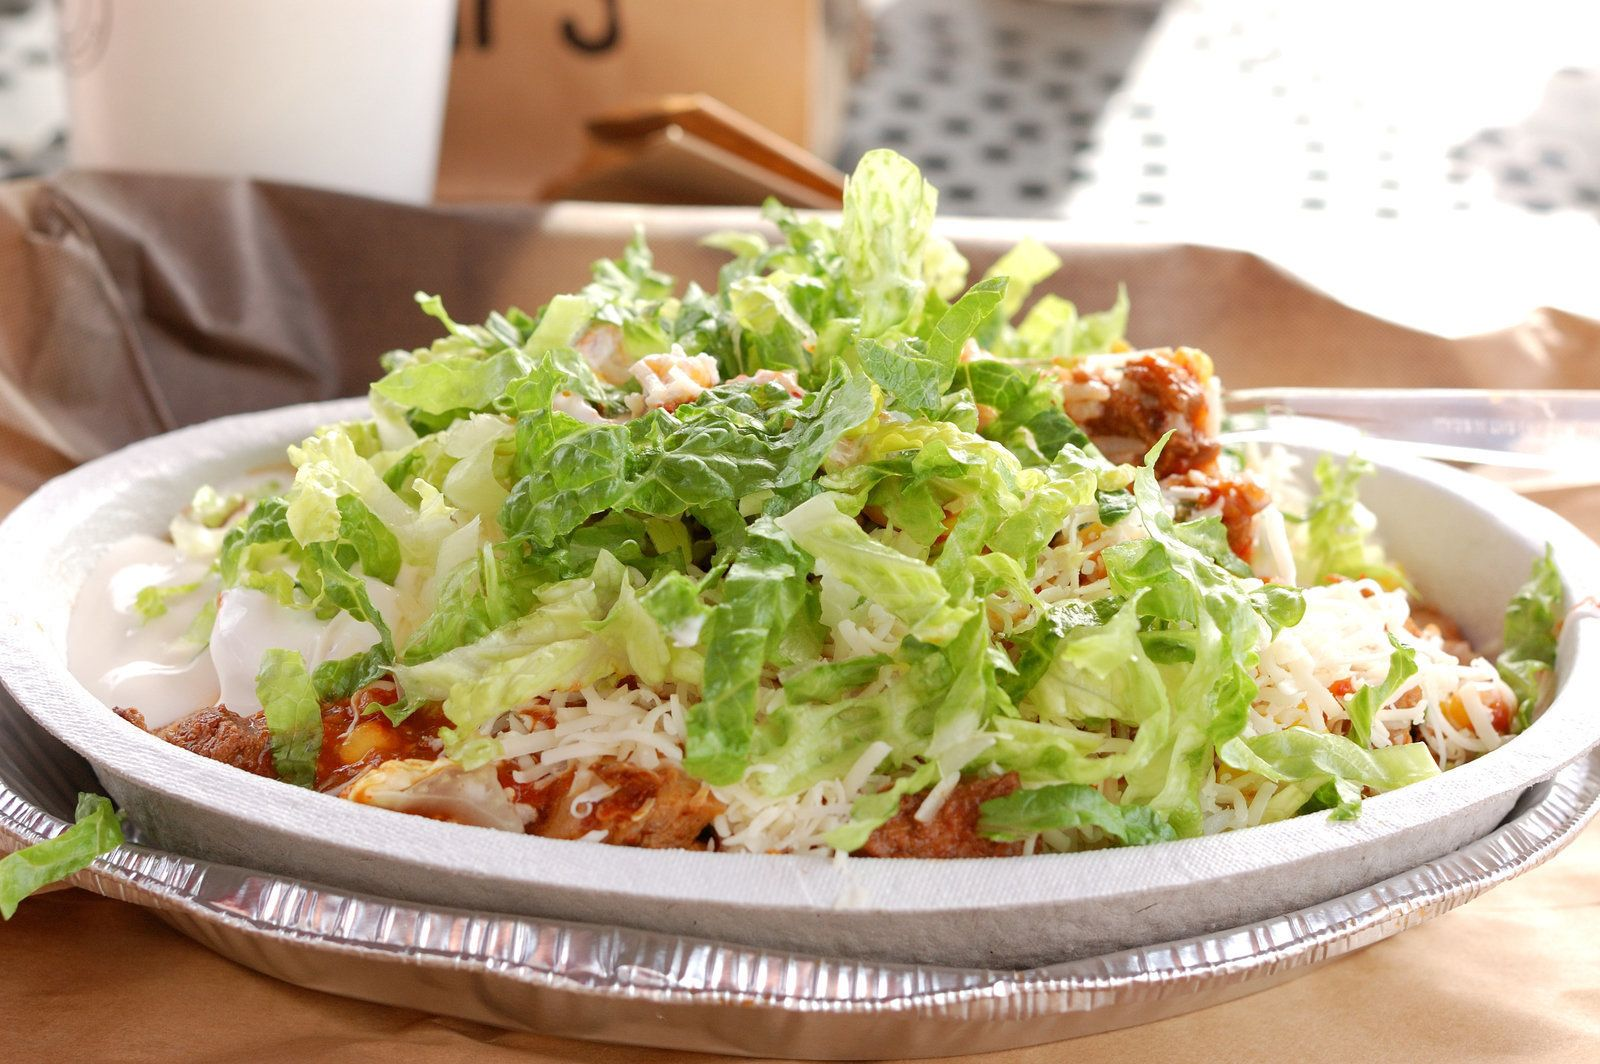 Chipotle is one of my favorite fastcasual restaurant